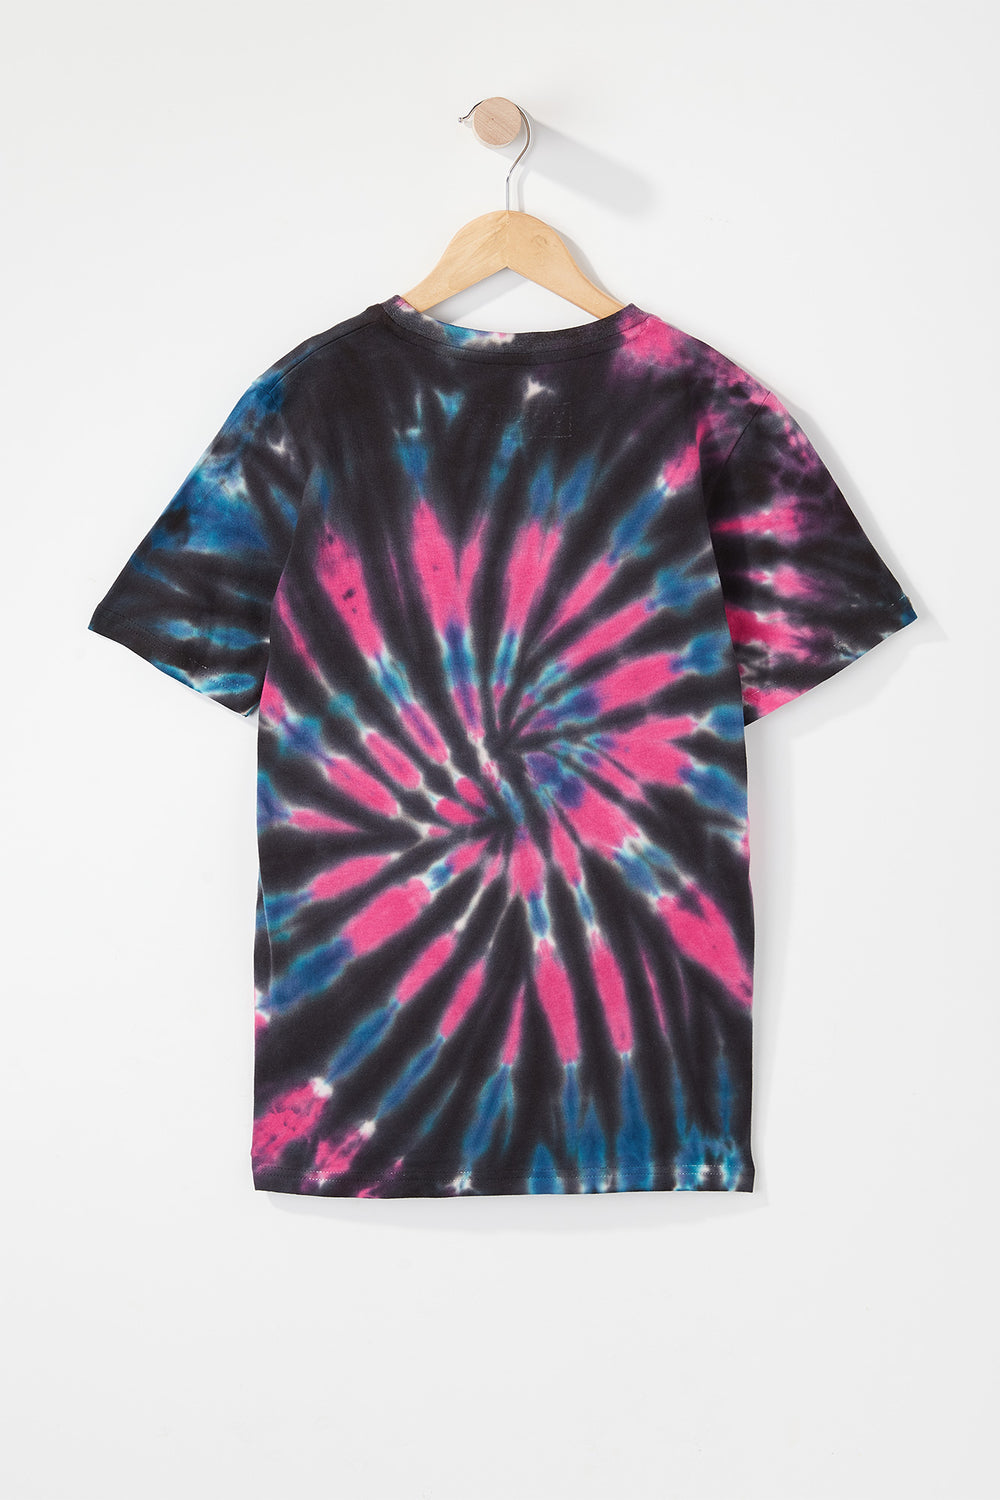 Young & Reckless Boys Tie-Dye T-Shirt Black